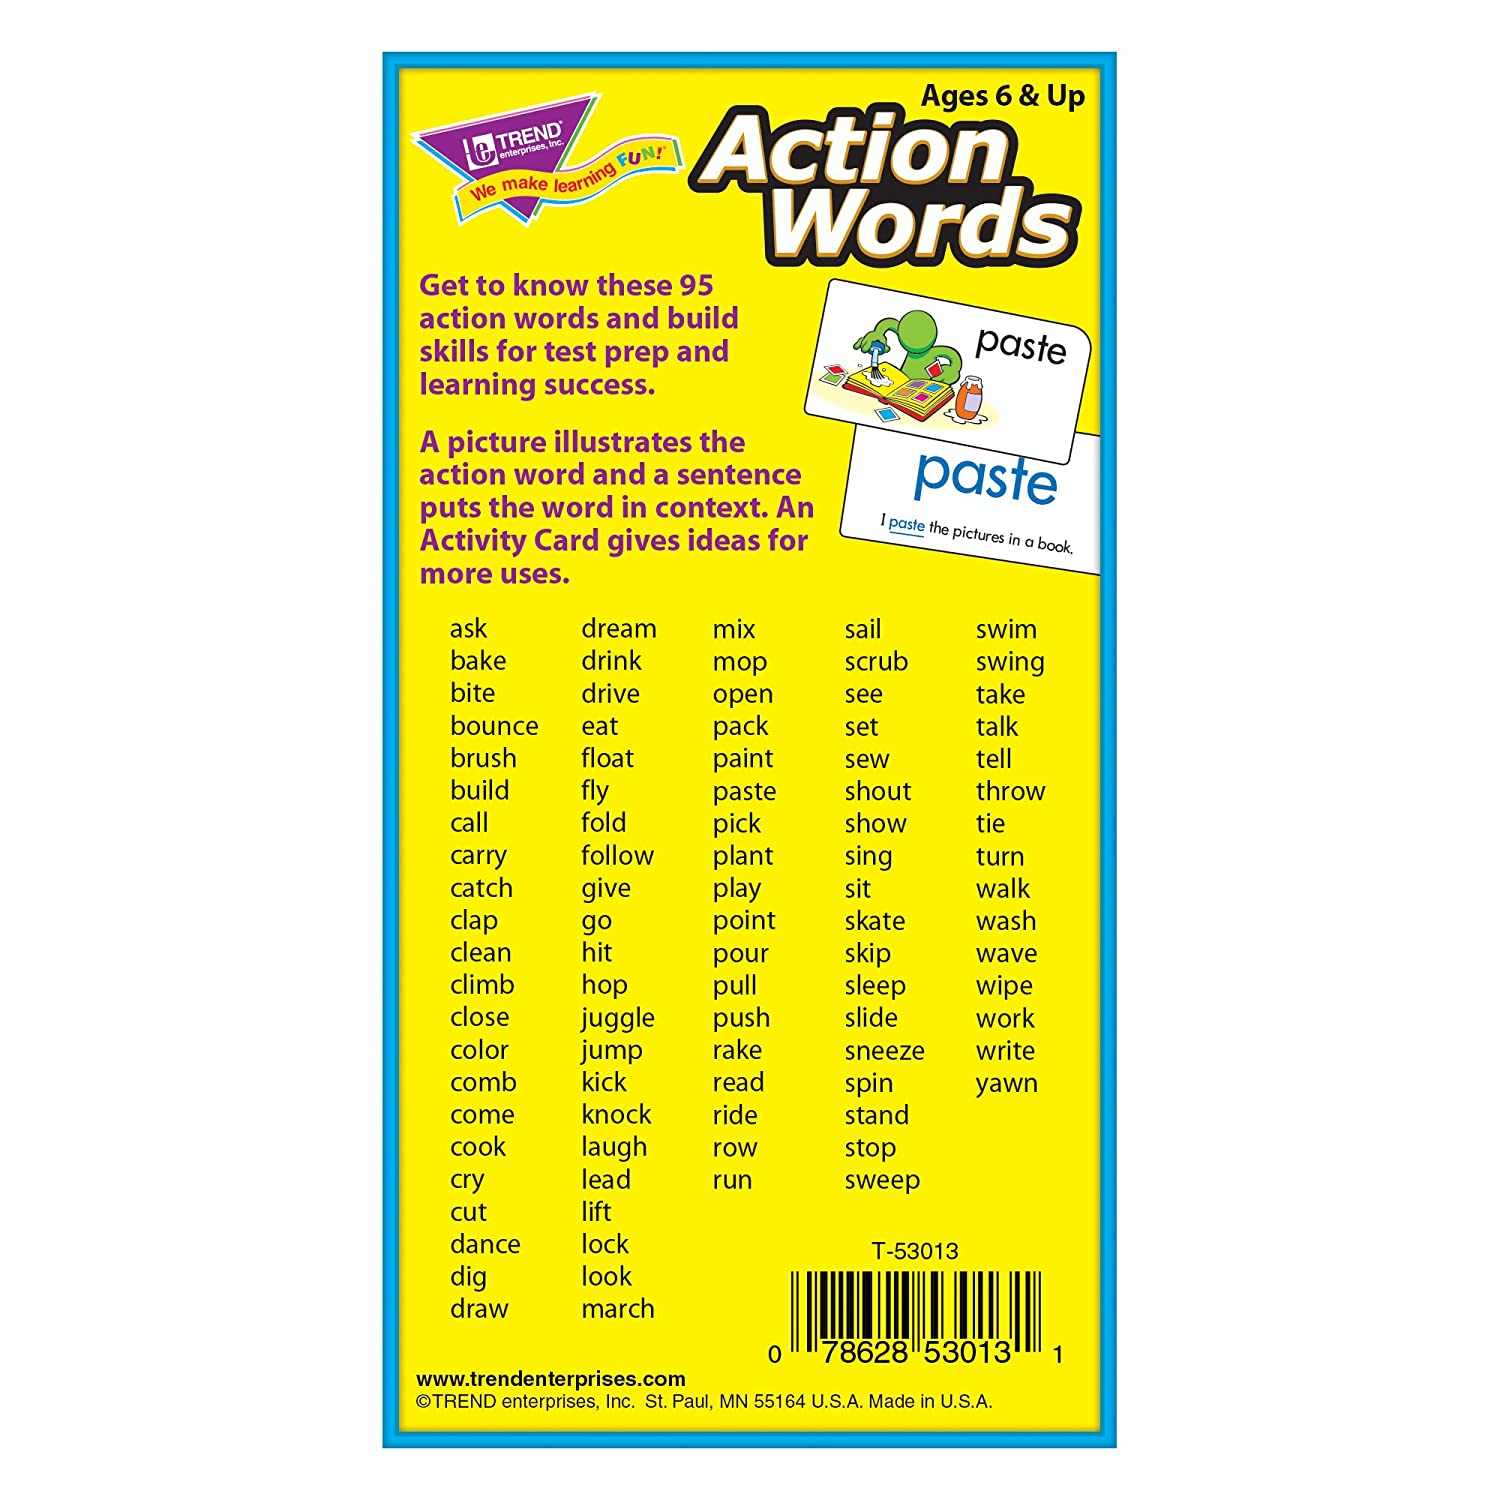 com action words skill drill flash cards pack of card com action words skill drill flash cards pack of 96 card game toys games